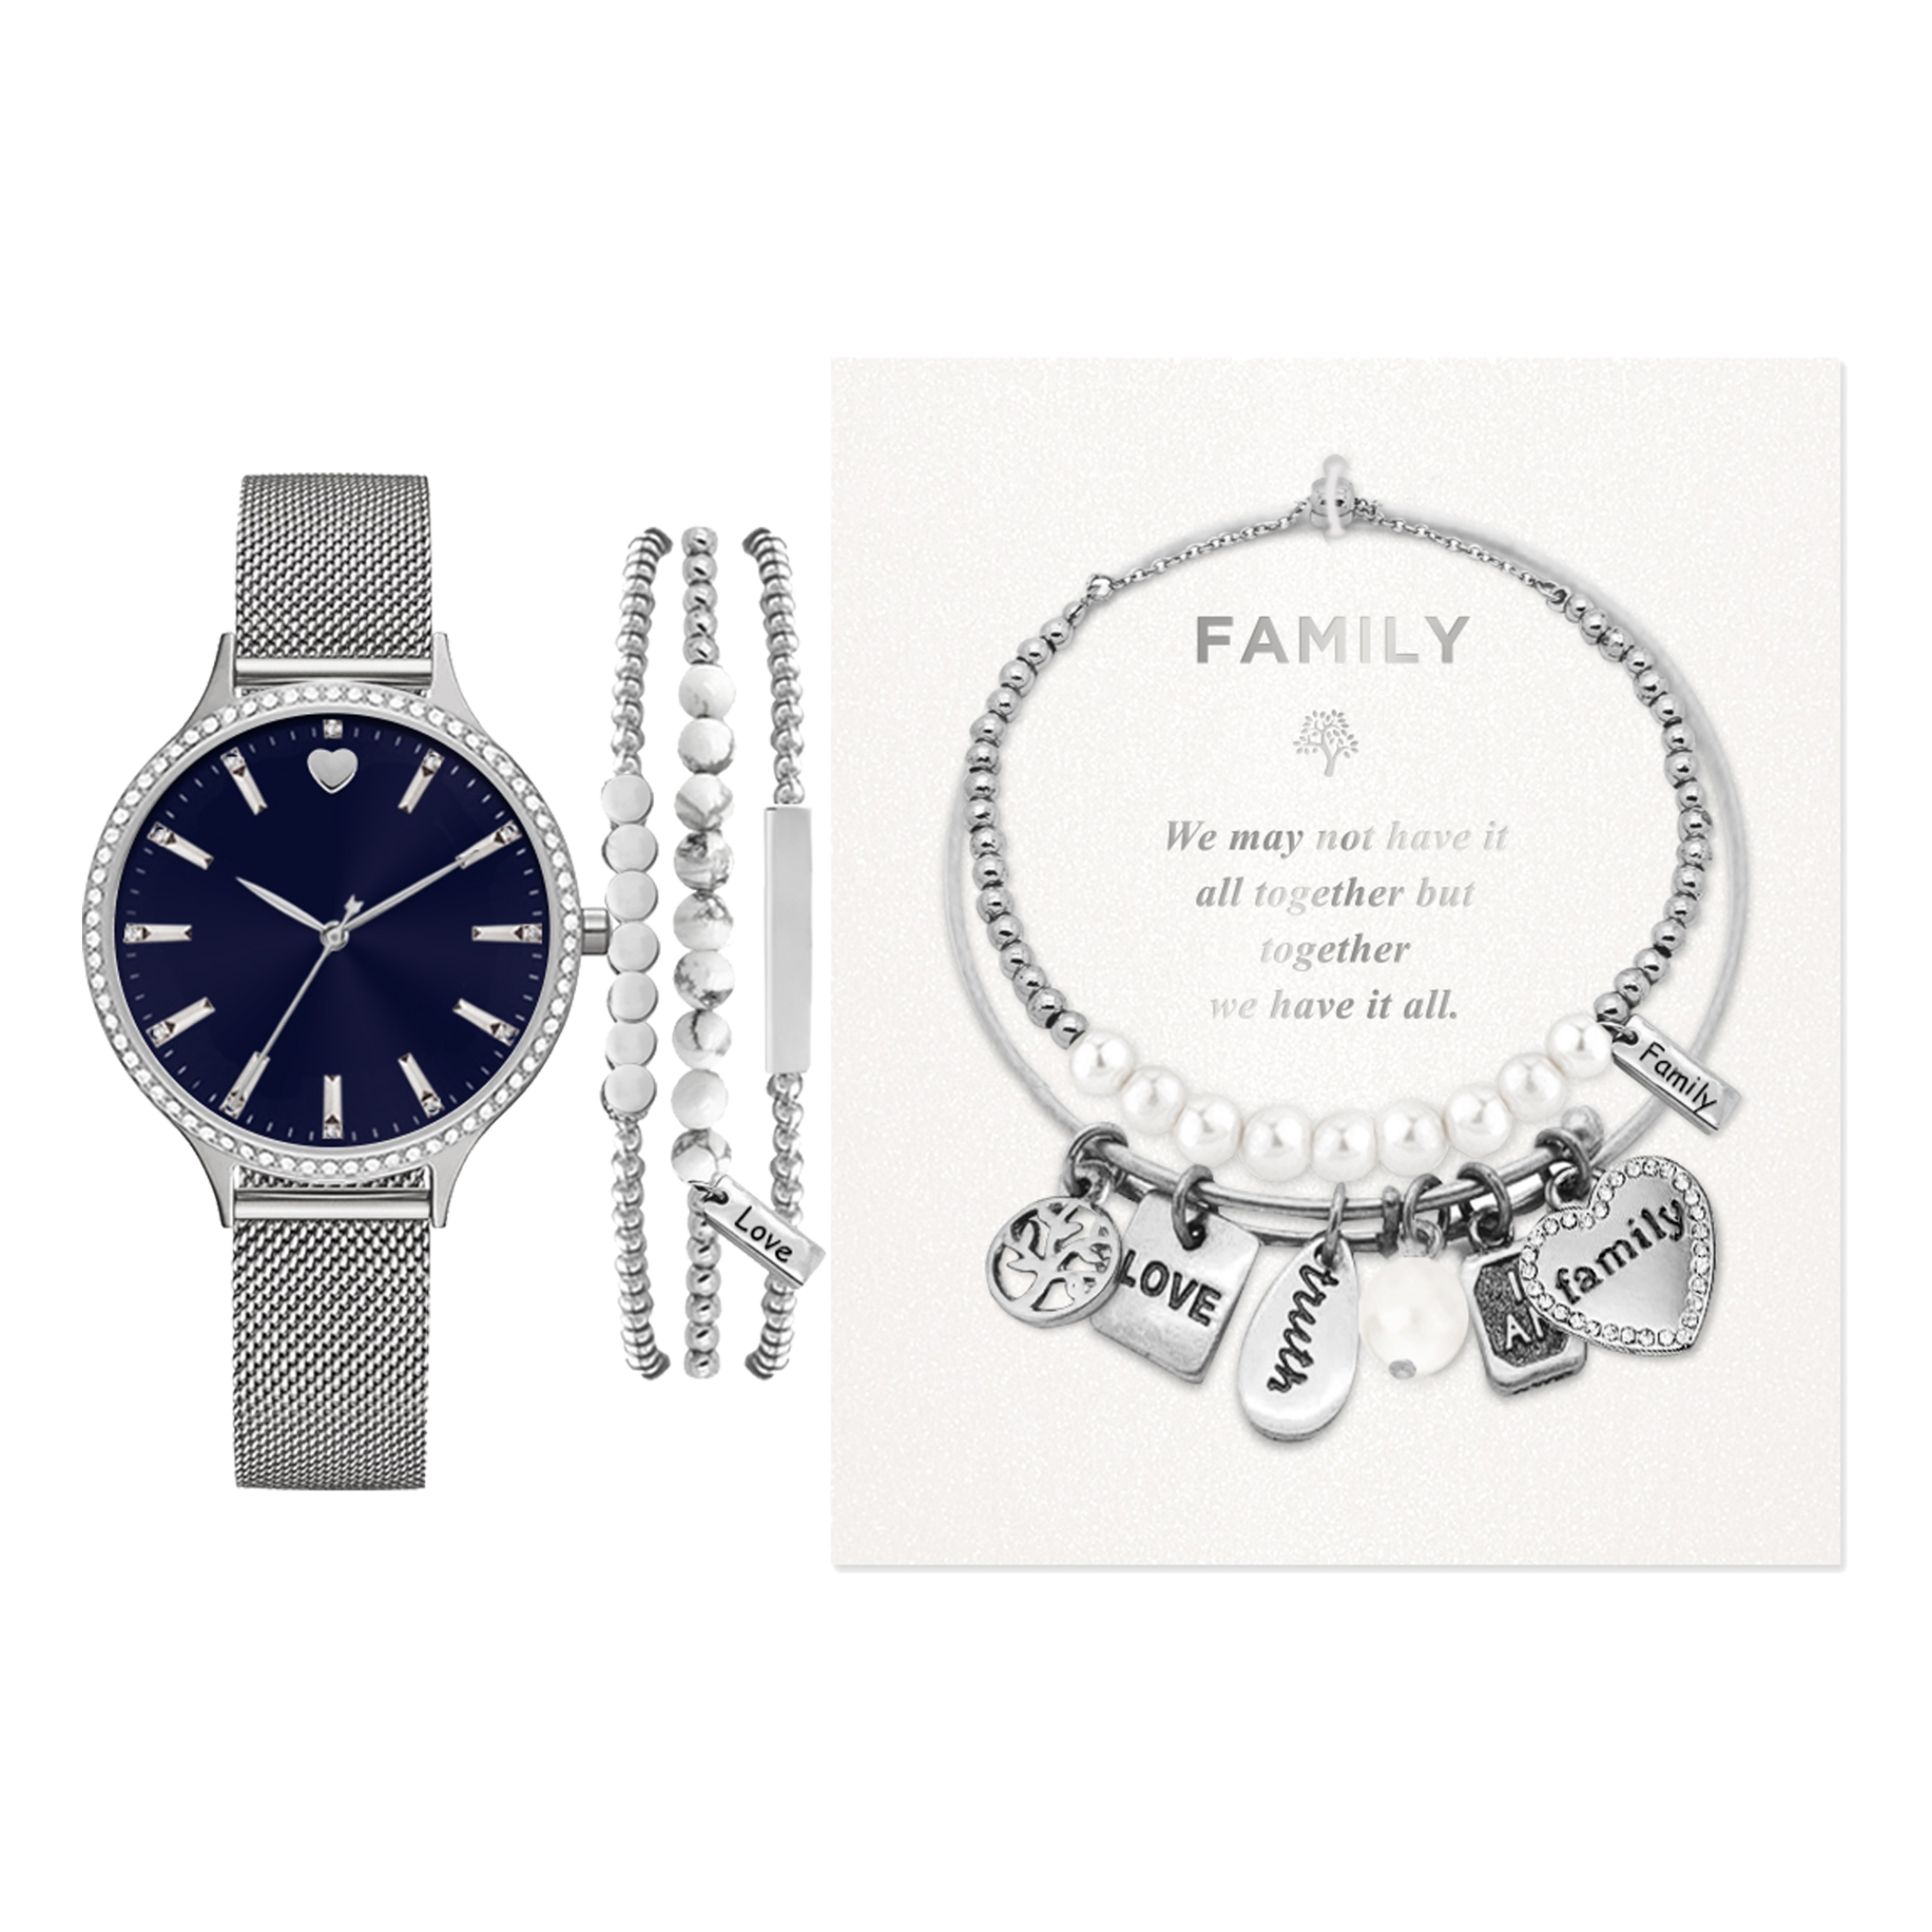 American Exchange Women S Holiday Watch And Bracelet Set Silver